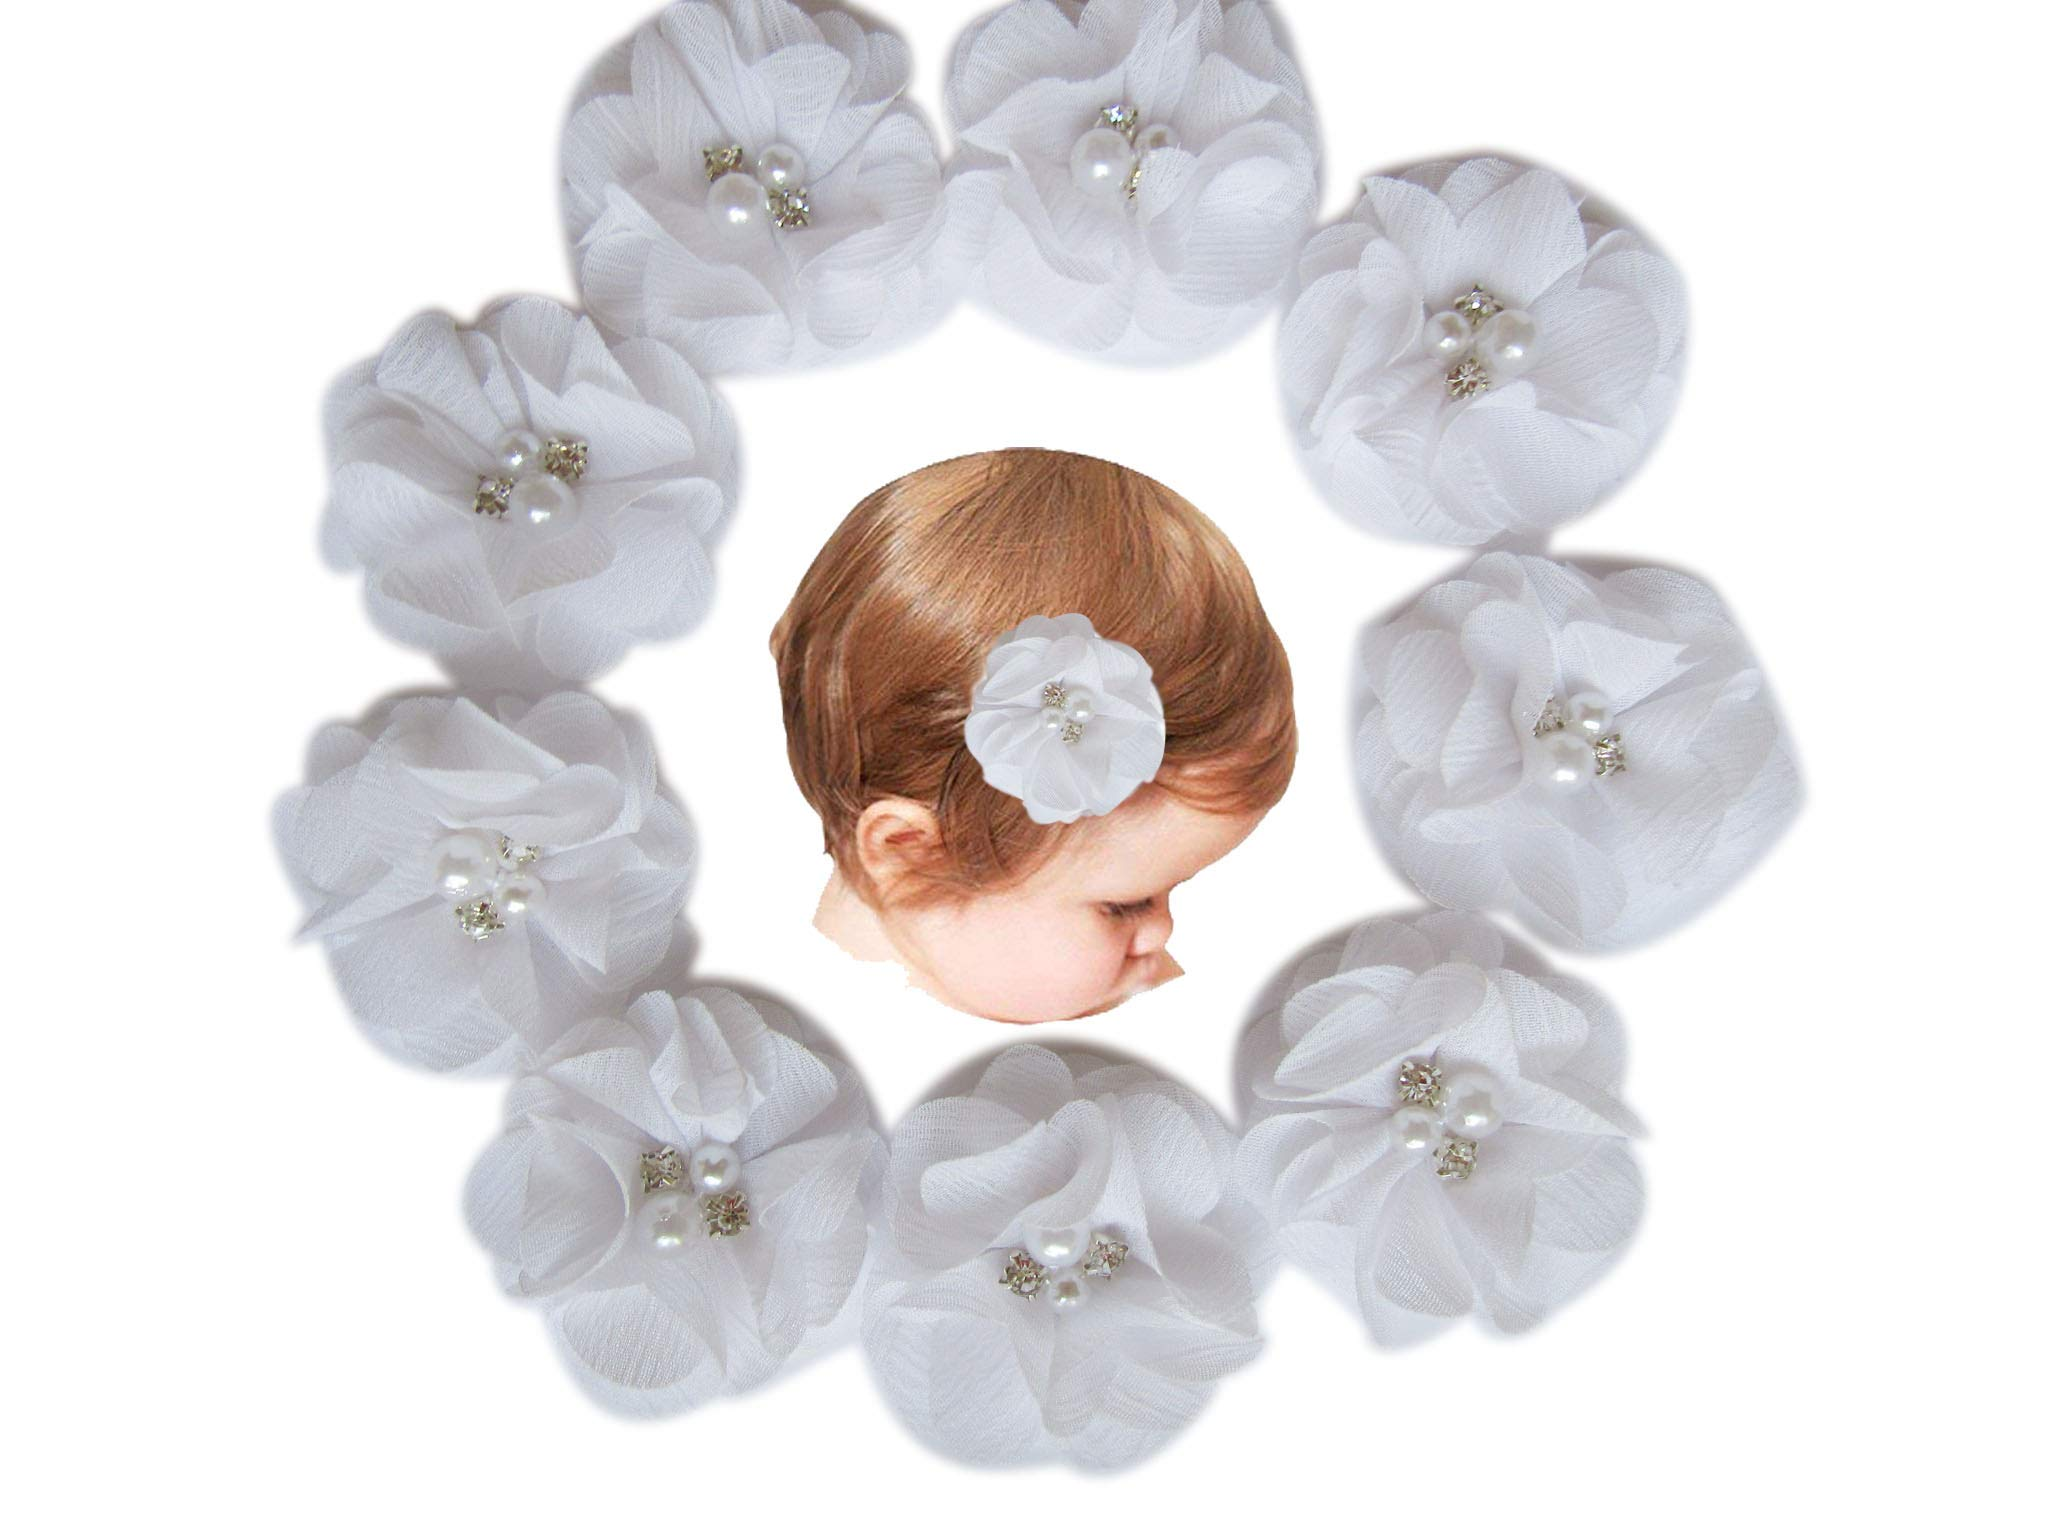 Baby Girls Chiffon Flower Hair Clips with Rhinestones and Pearl,YYCRAFT 10 pcs Party Wedding 2'' Hair Accessory for Kids Toddler Infant Girls(Snow White)